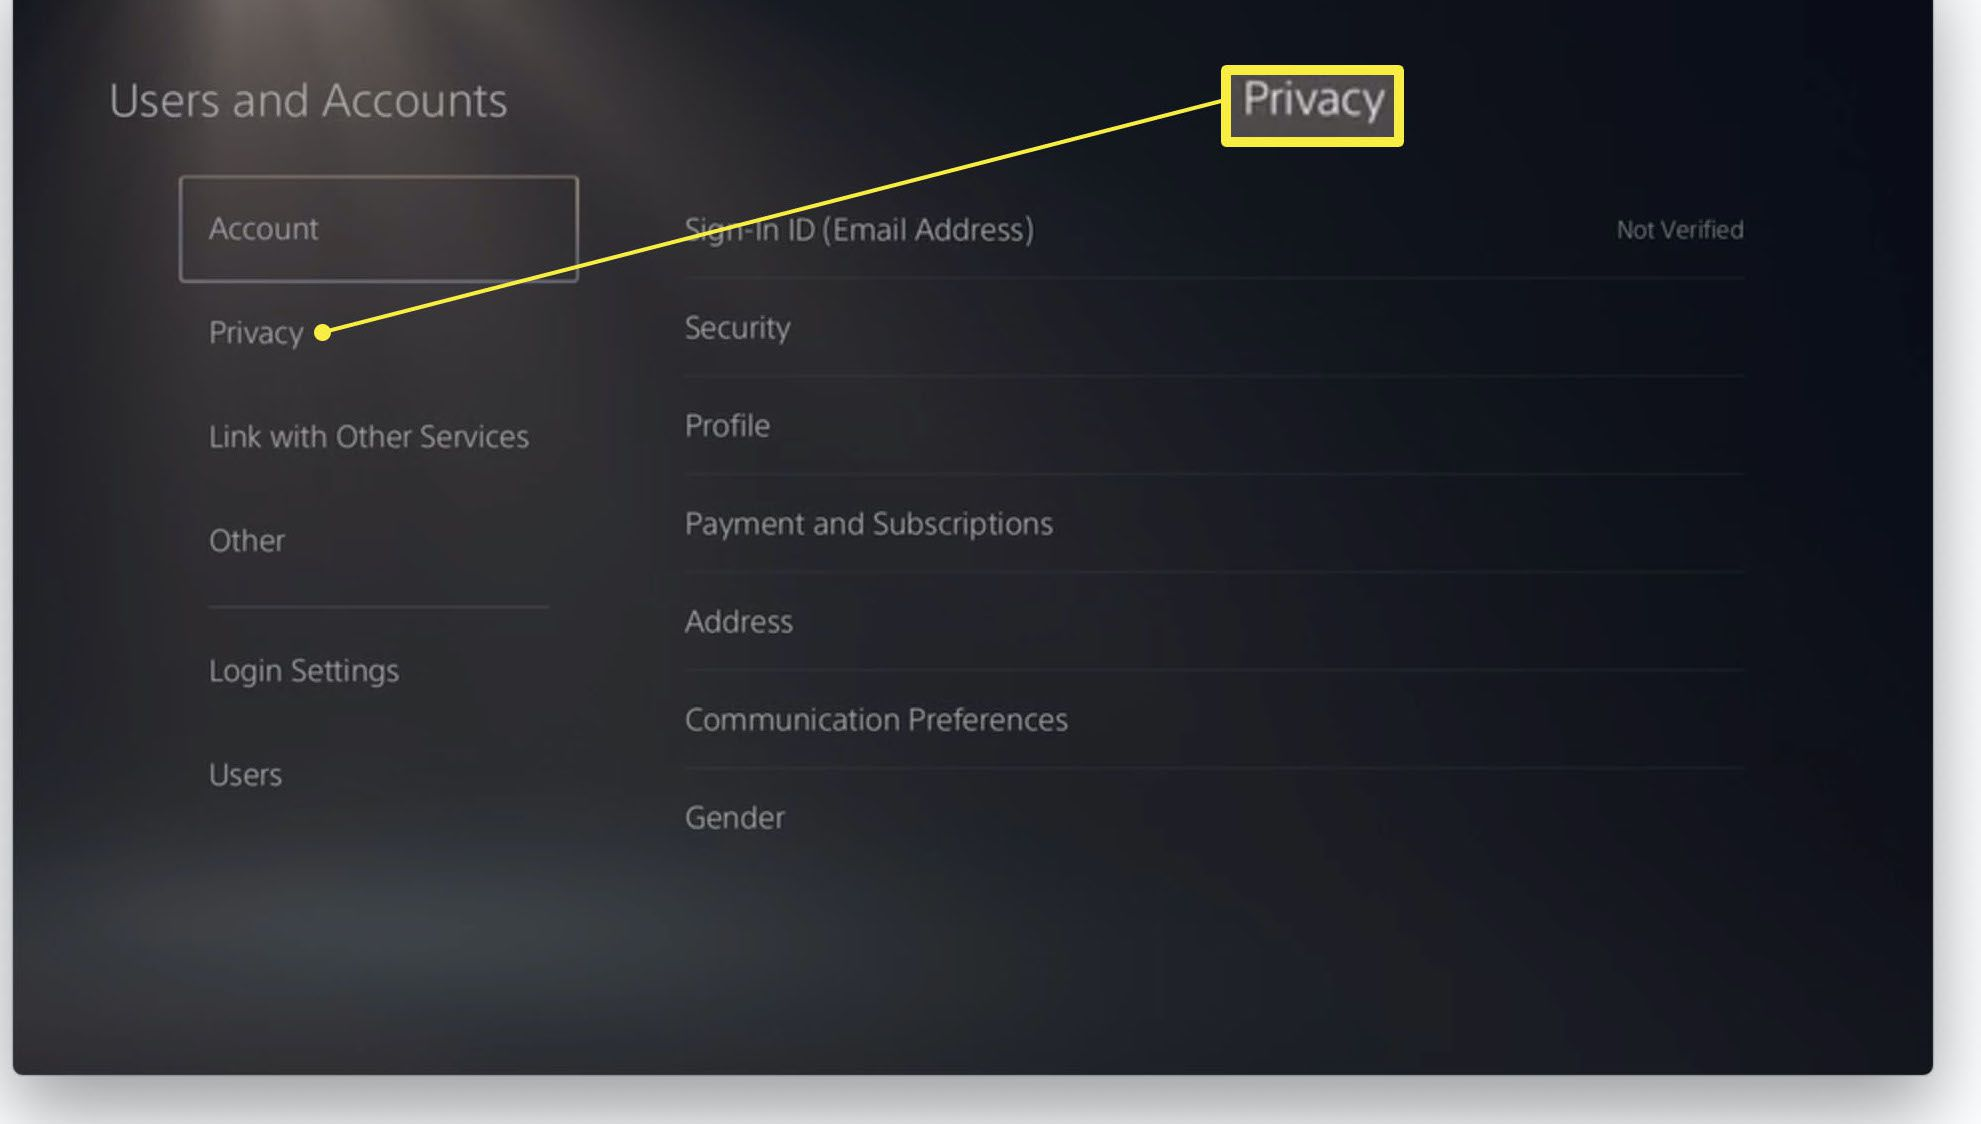 PlayStation 5 Users and Accounts settings with privacy highlighted